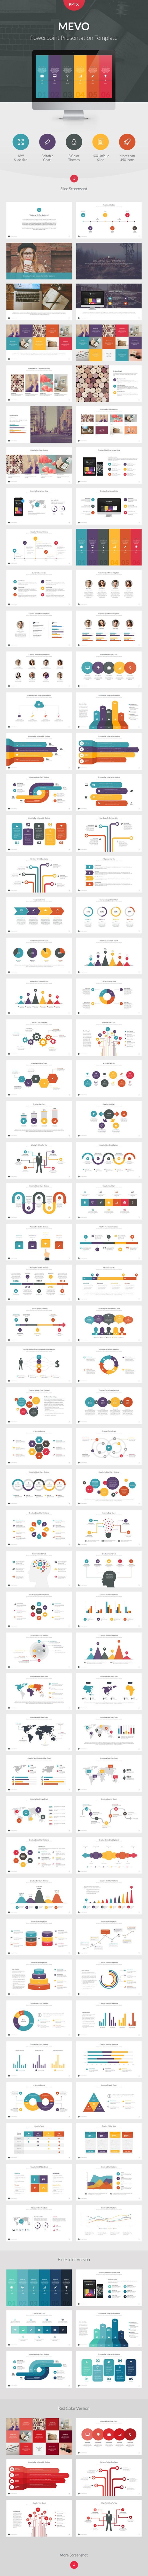 12 best Conference Program images on Pinterest | Page layout, Graph ...